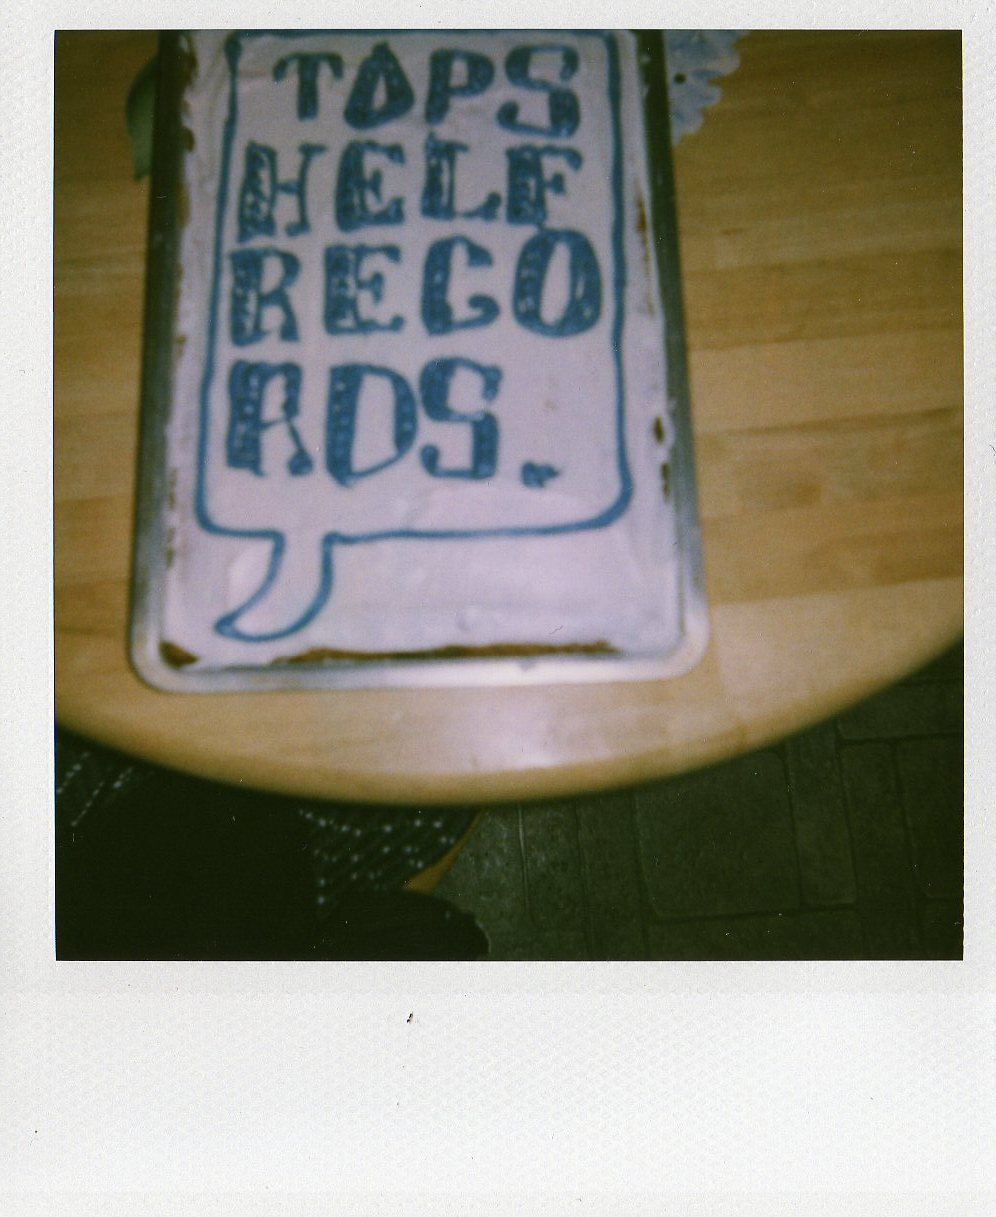 A birthday cake with the Topshelf Records logo that our friend Kelly made us for our first birthday.